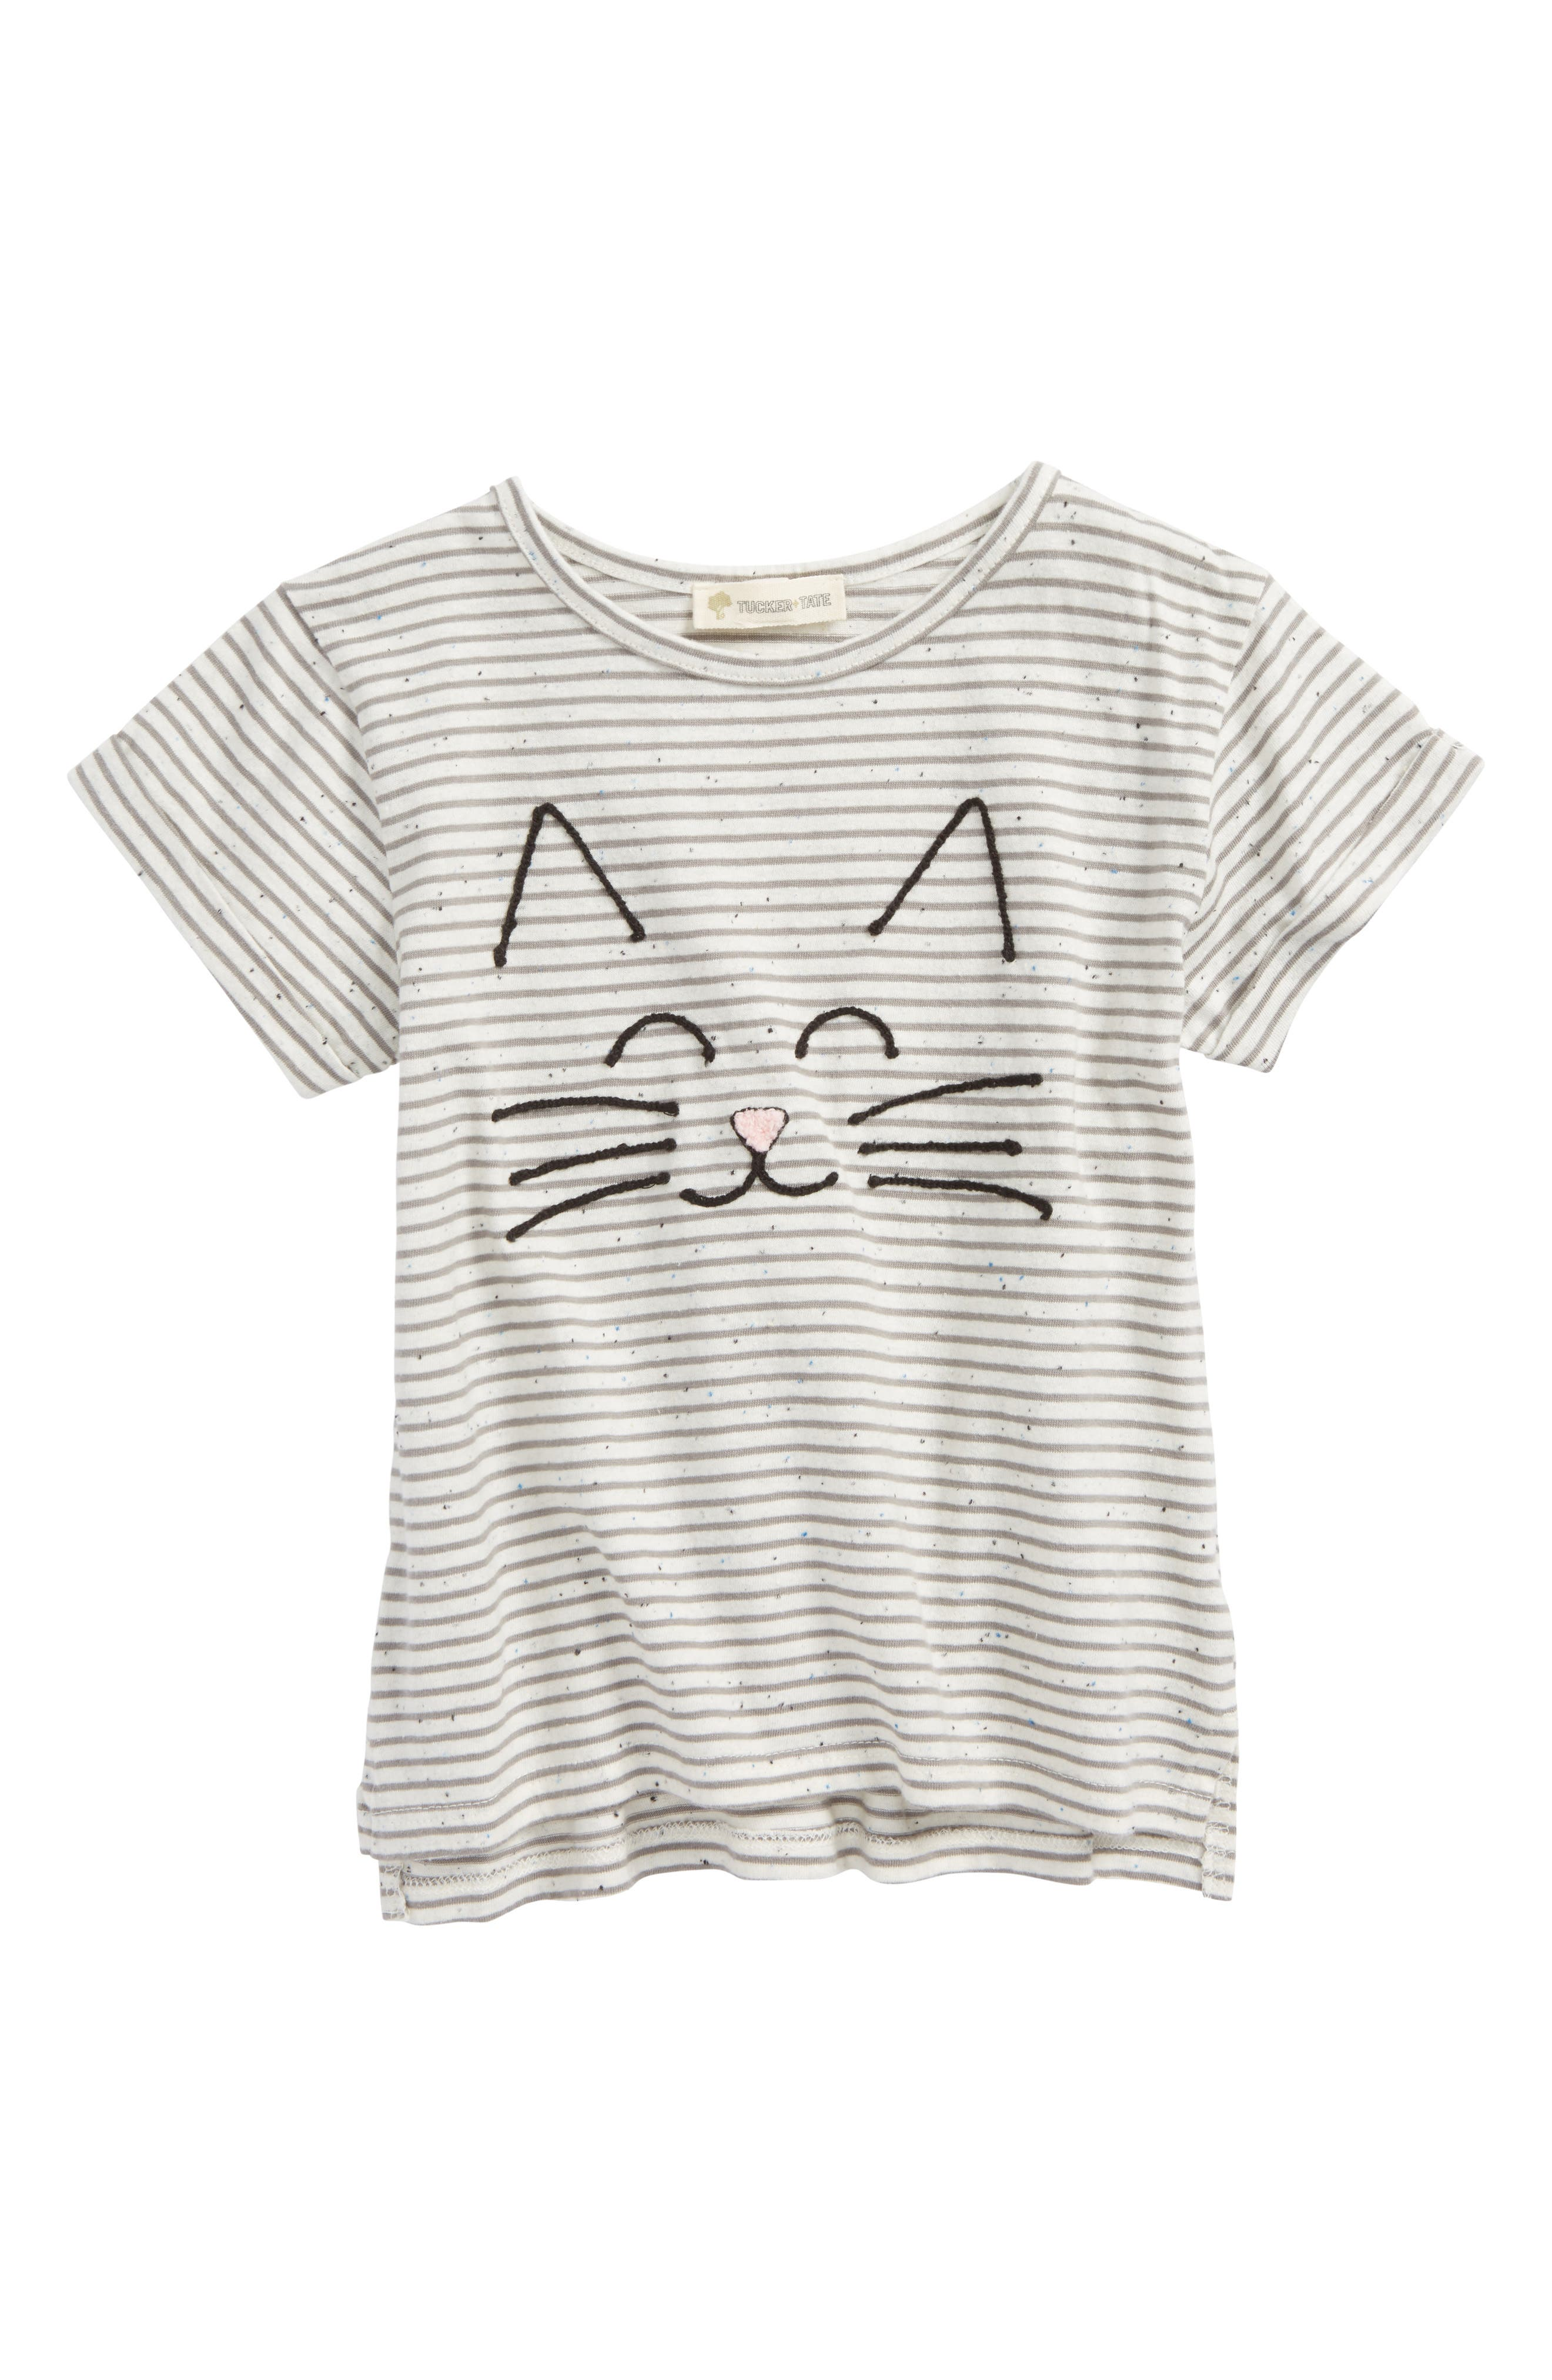 Tucker + Tate Embroidered Stripe Tee (Toddler Girls, Little Girls & Big Girls)